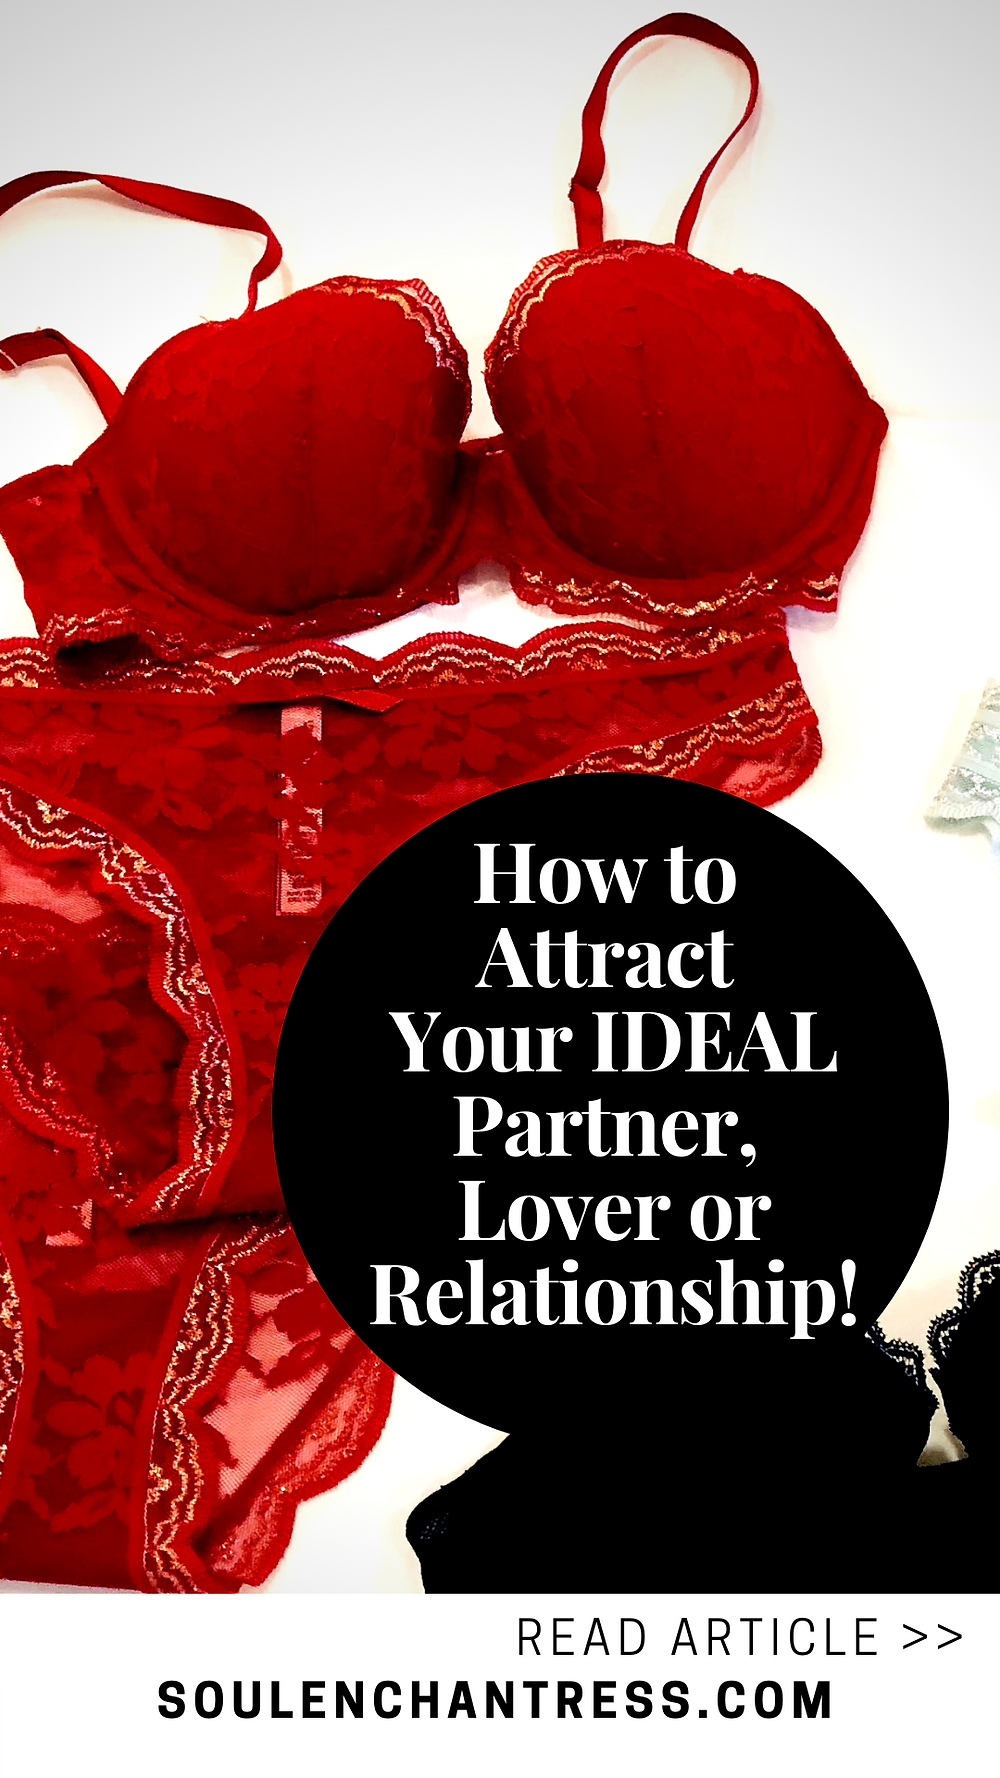 how to attract your ideal partner, lover, or relationship, attract love, attract your desires, soul enchantress